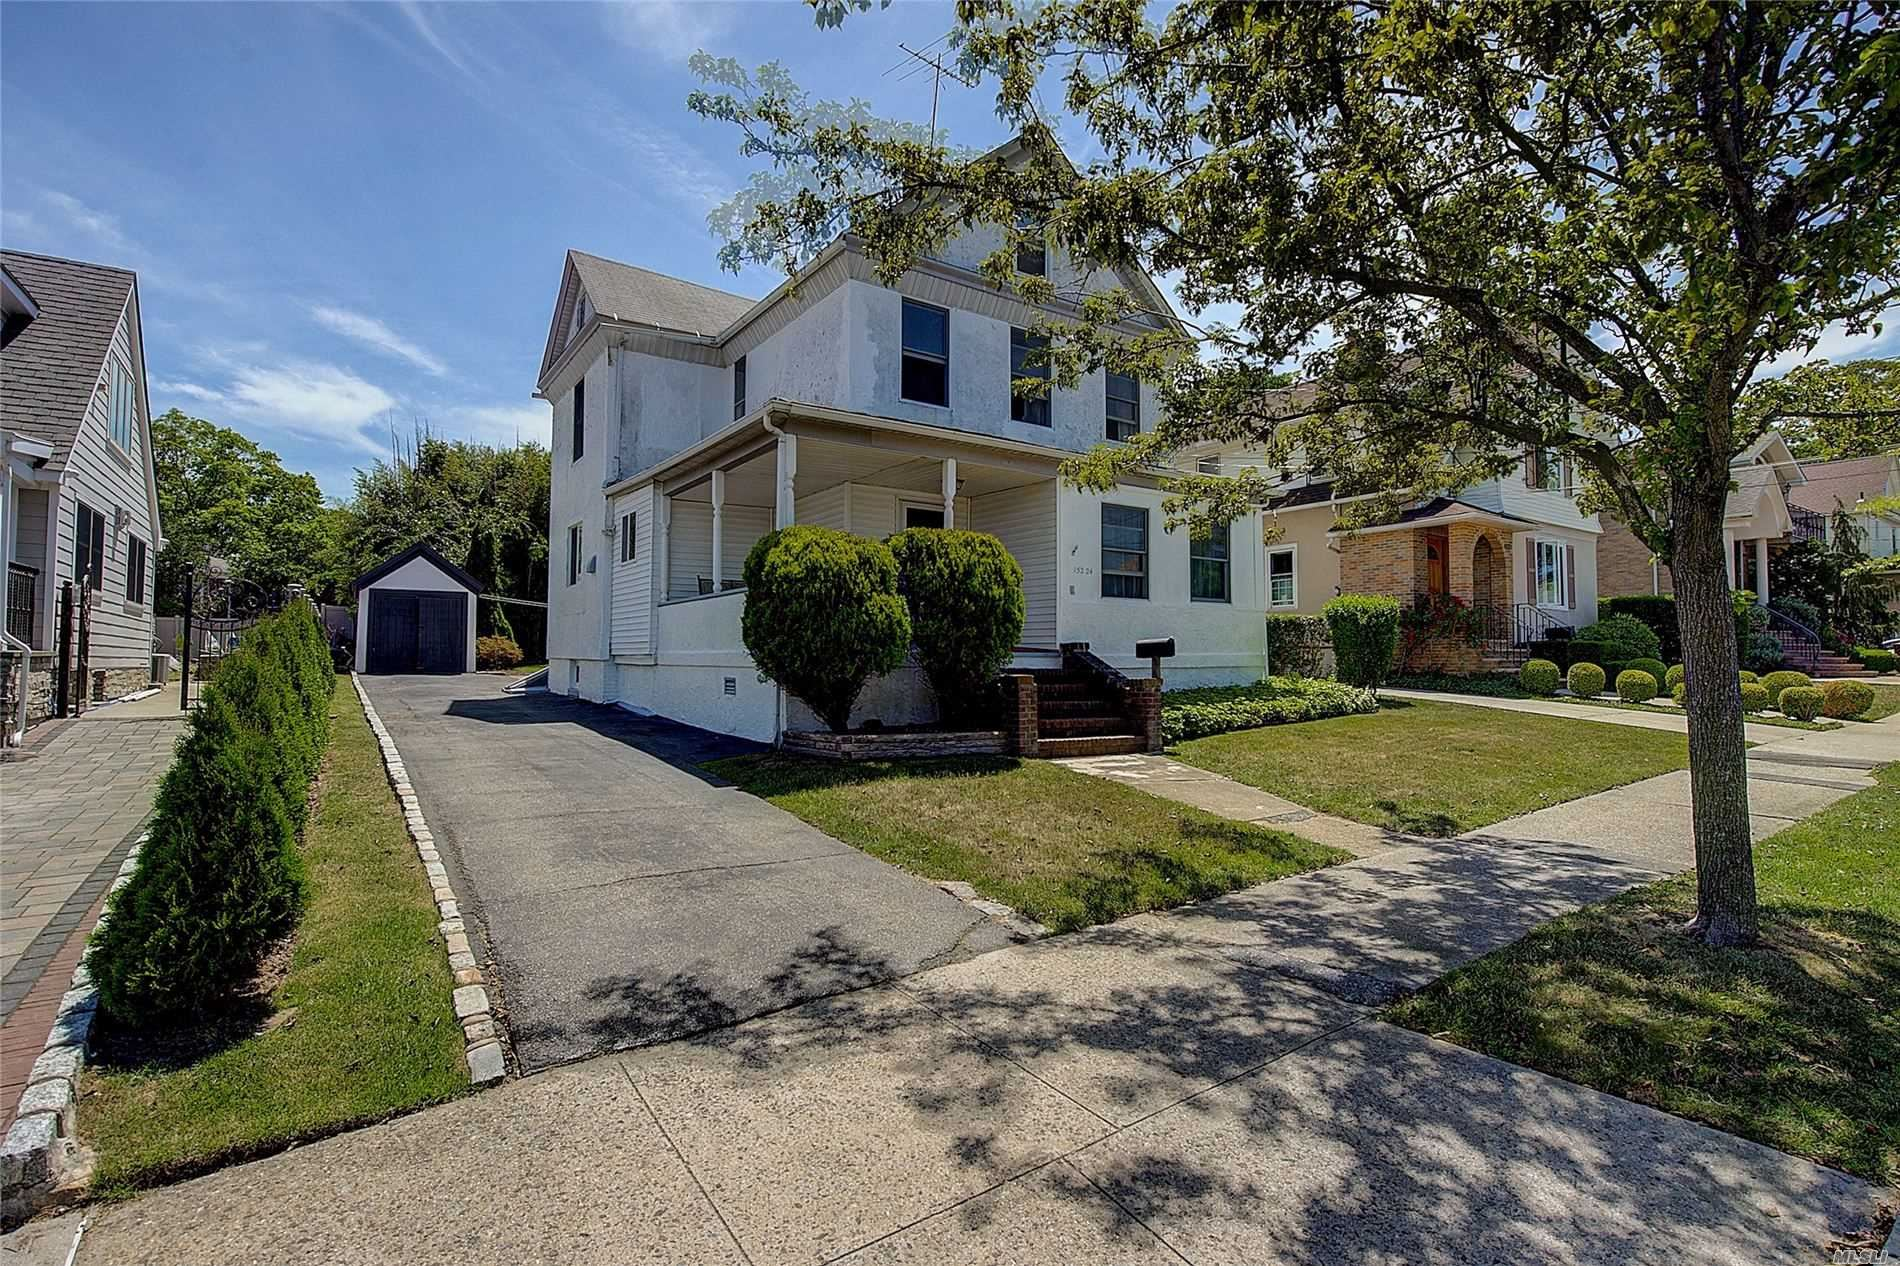 152-24 12th Road, Whitestone, NY 11357 - MLS#: 3224710